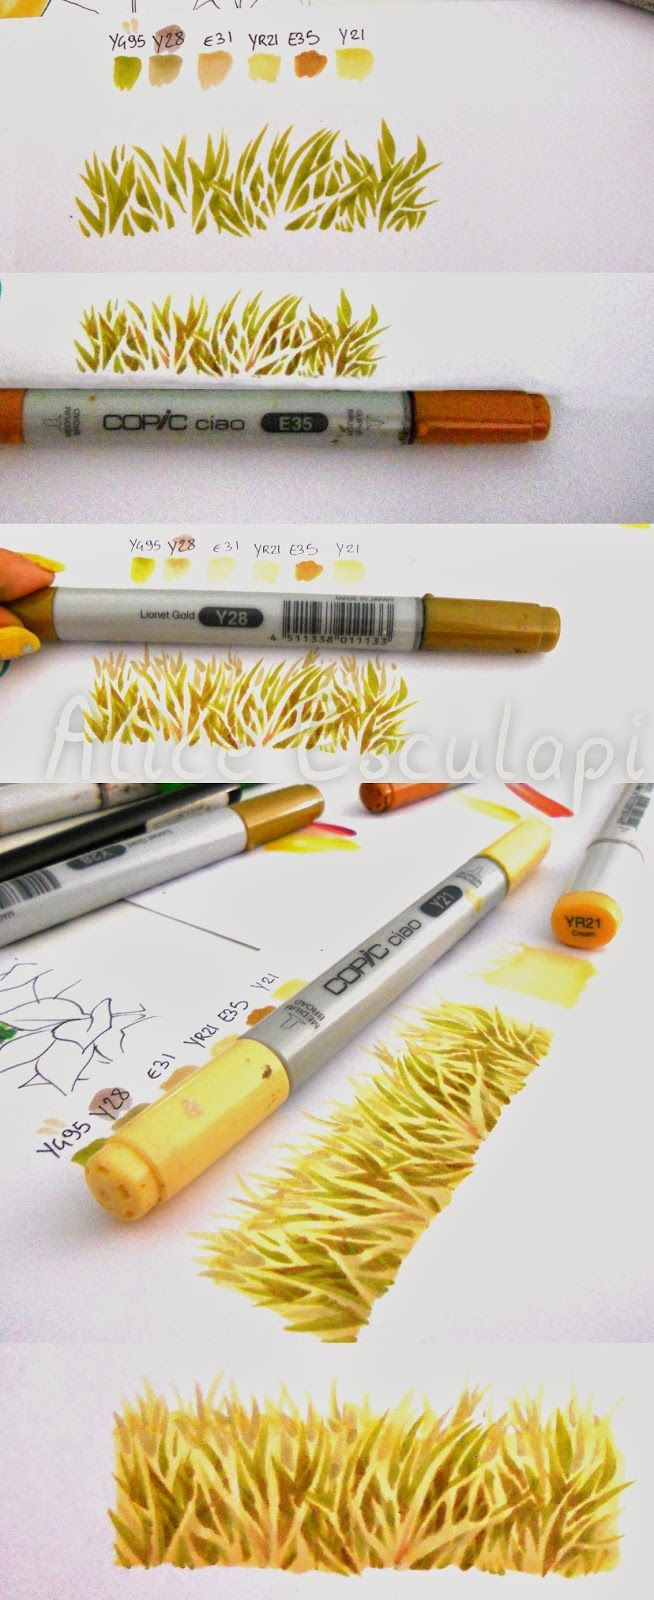 http://copic-italia.blogspot.ca/2014/07/tutorial-texture-01.html